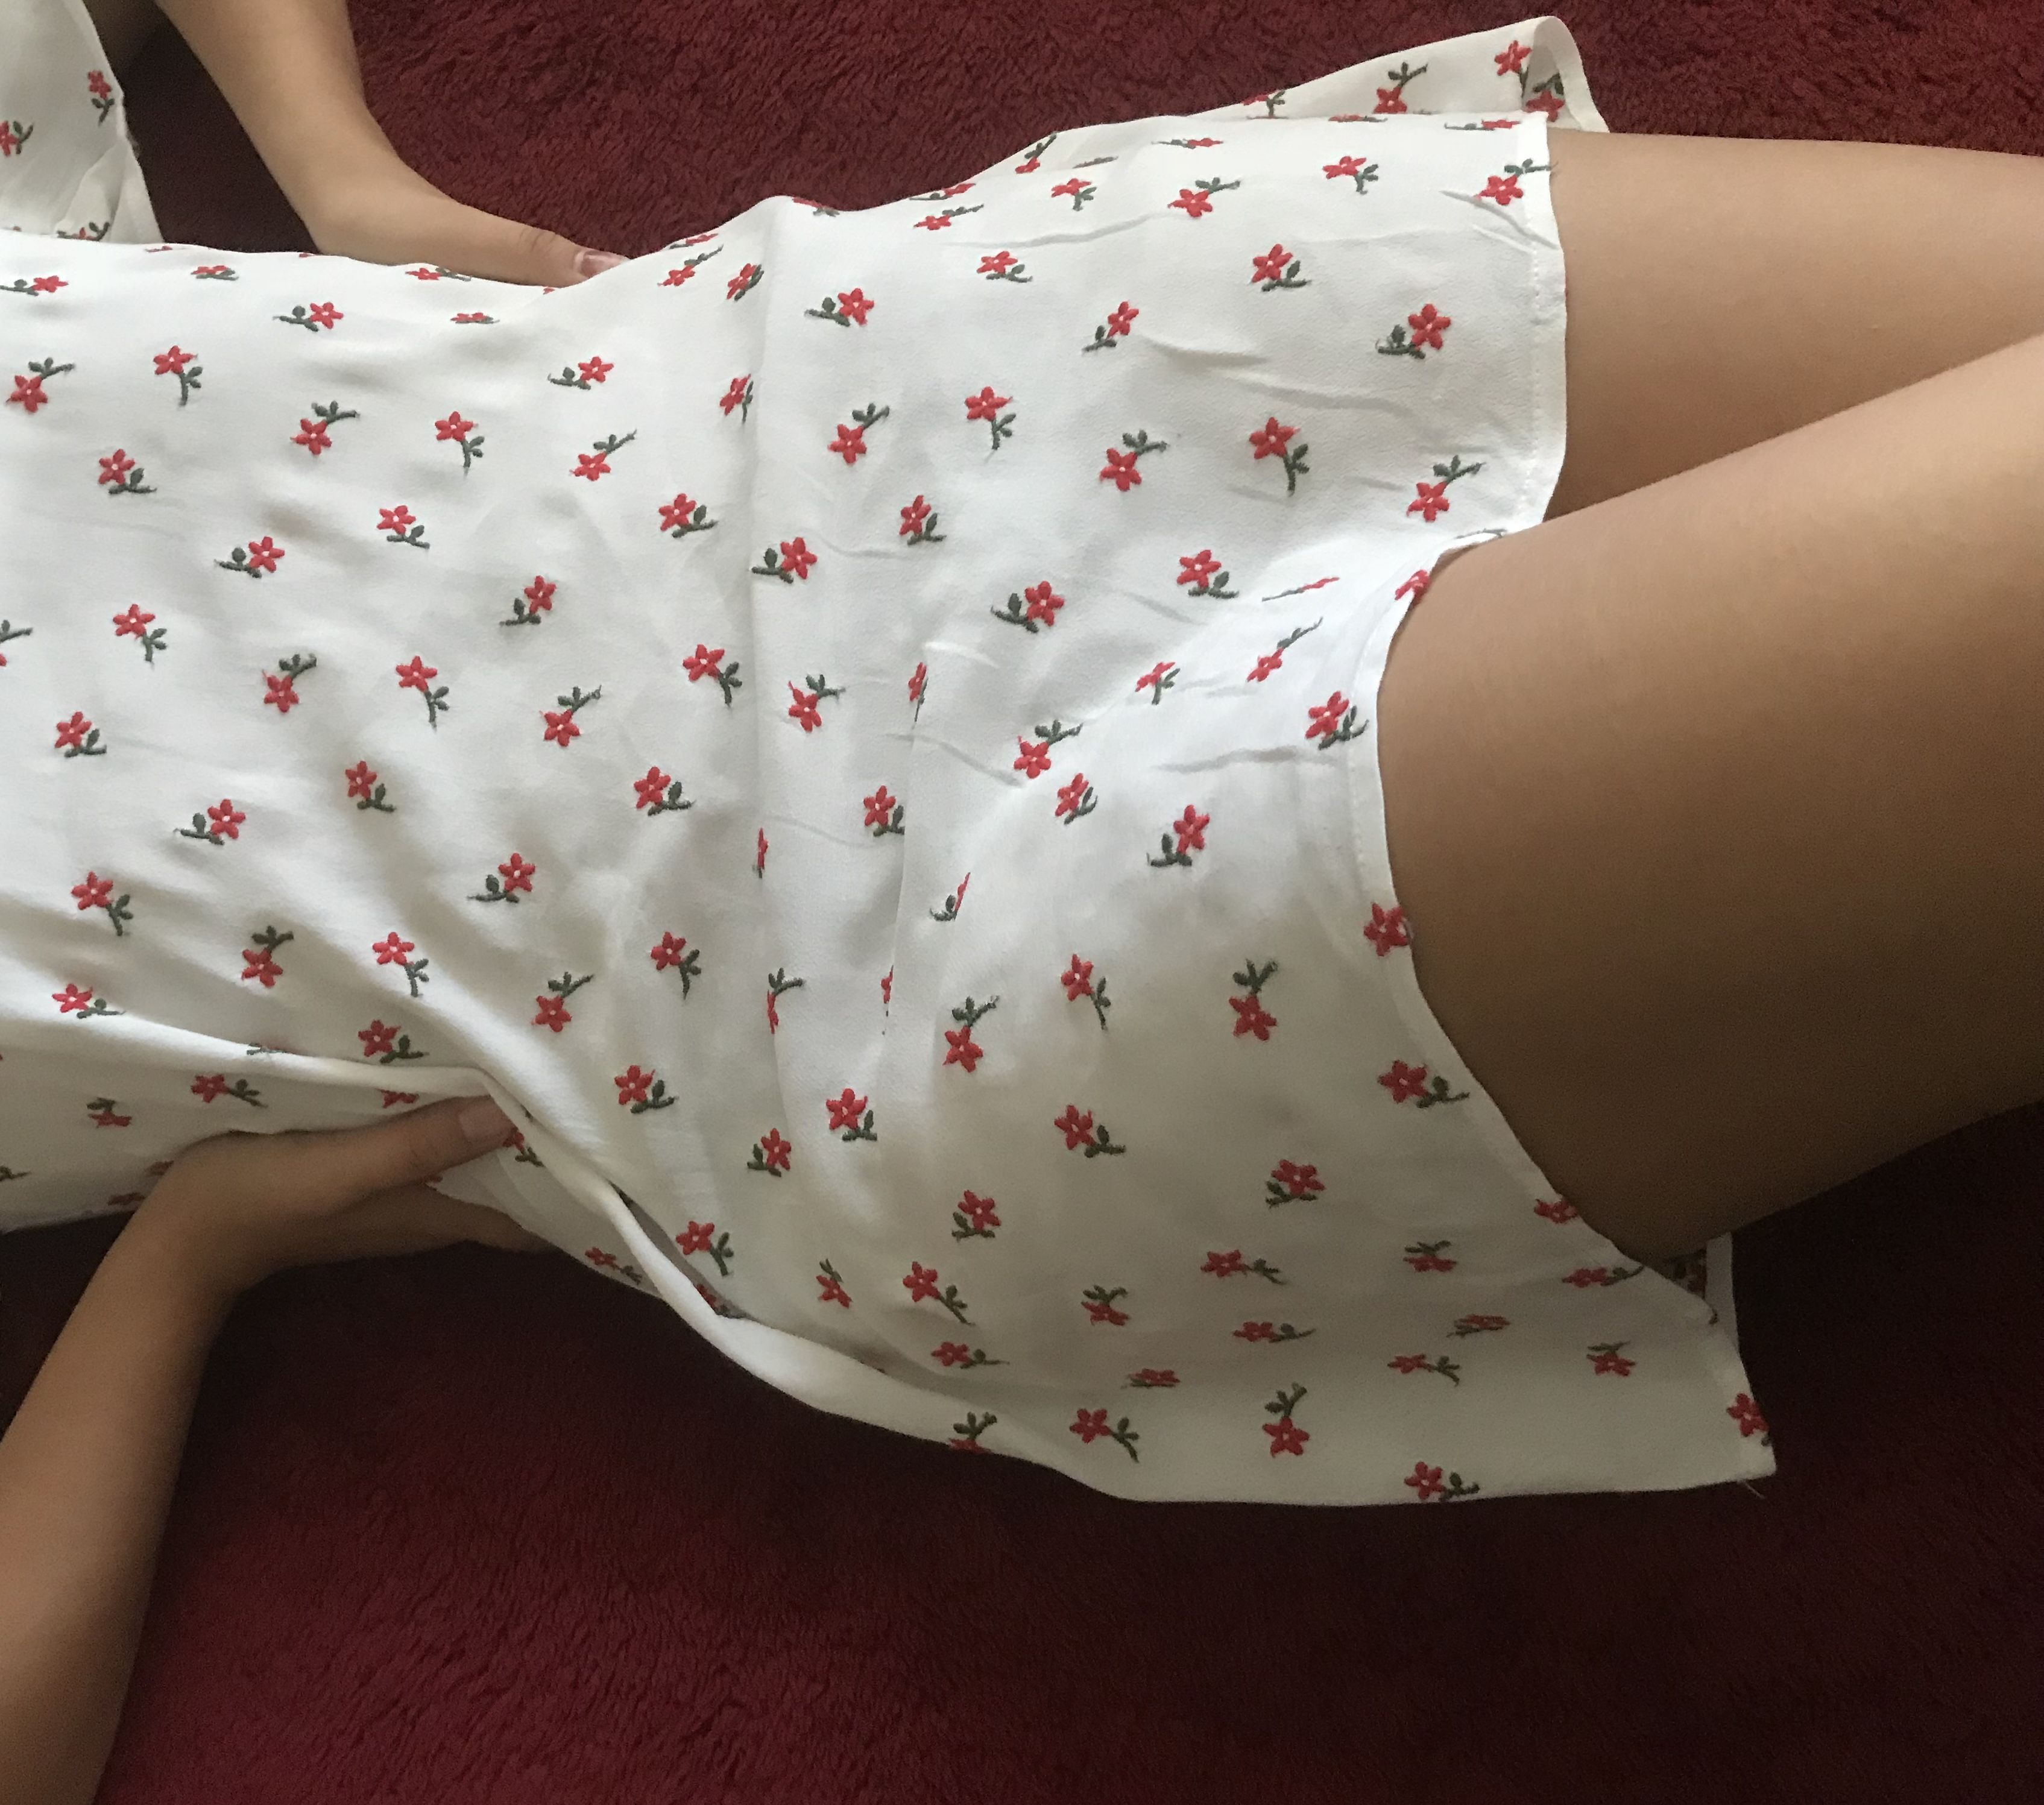 Pin by babydoll on Outfits   Fresh girls, Summertime sadness ...